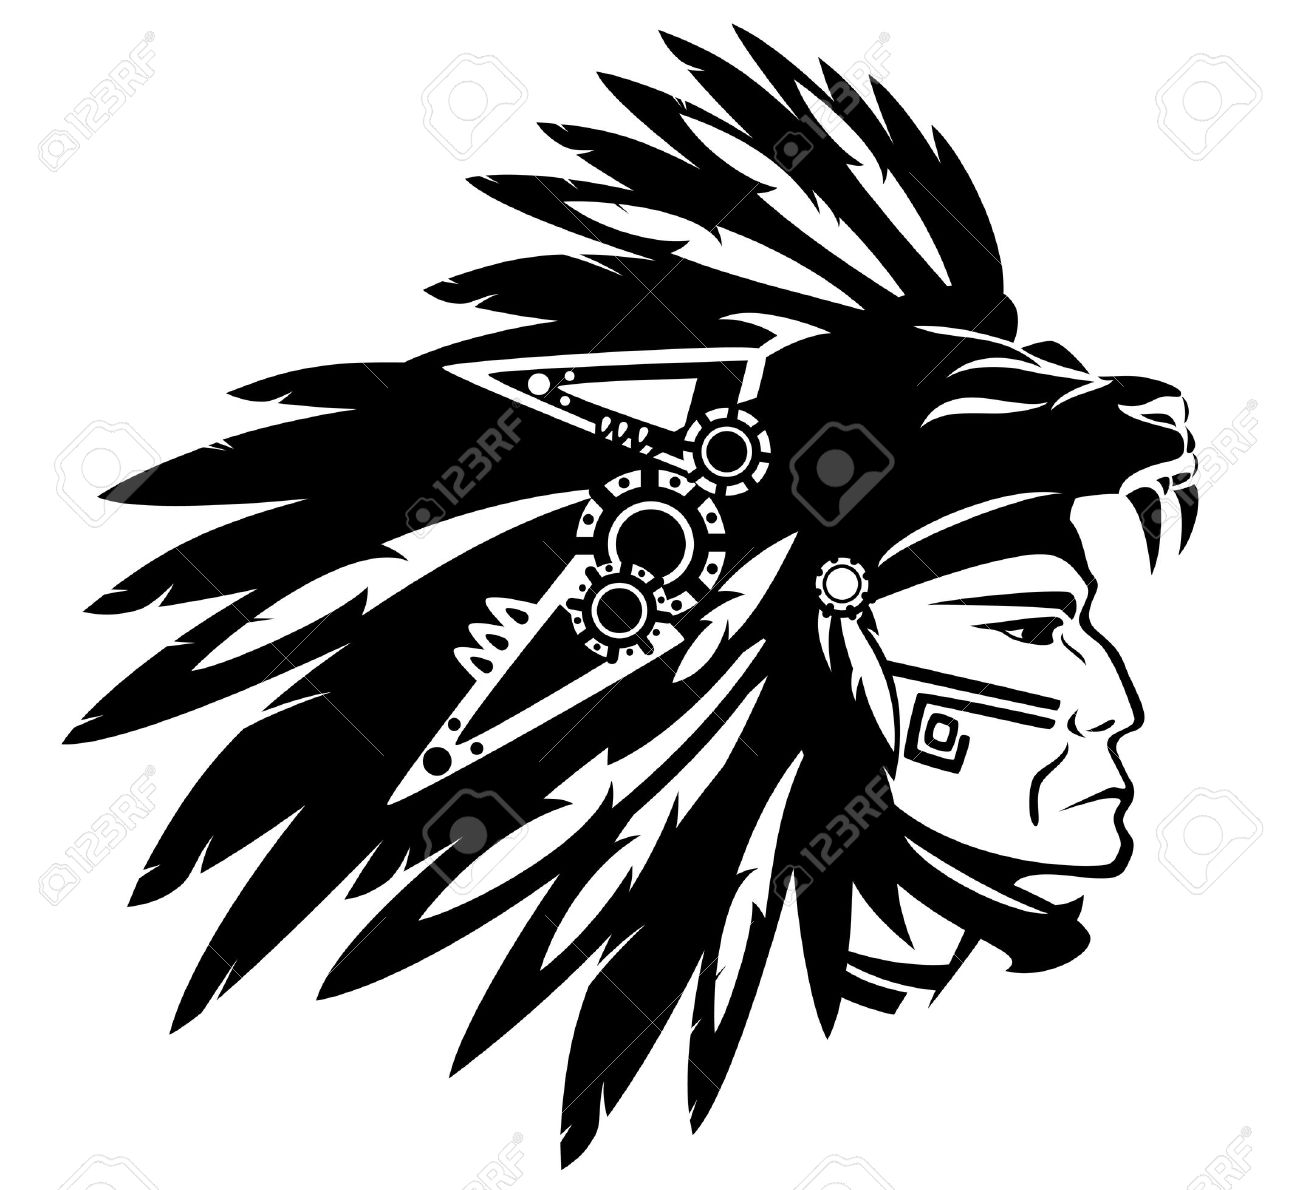 Aztec tribe warrior wearing feather headdress with panther head - 30535410